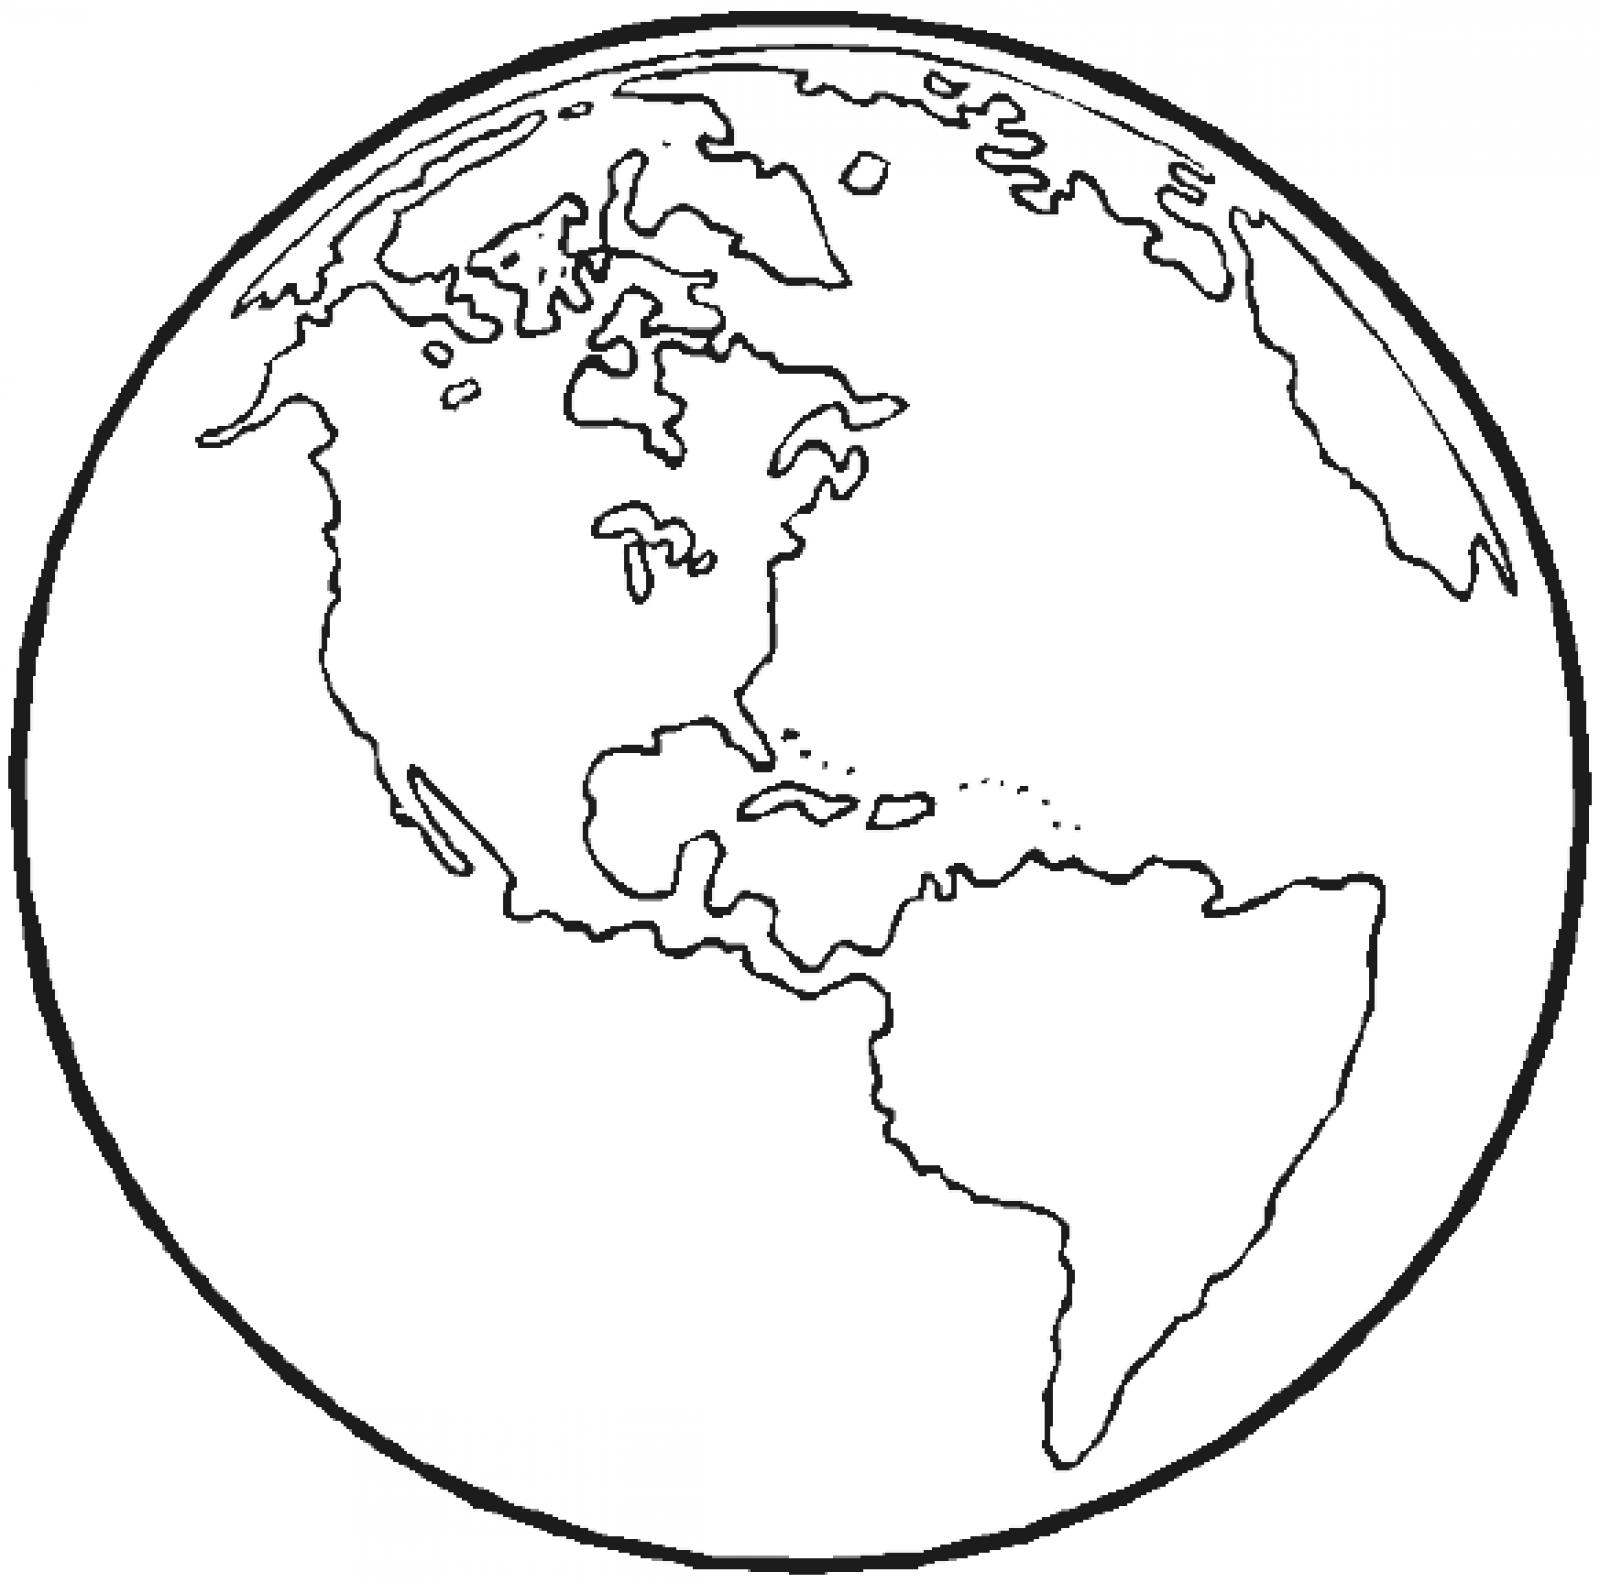 World clipart coloring. Black and white earth